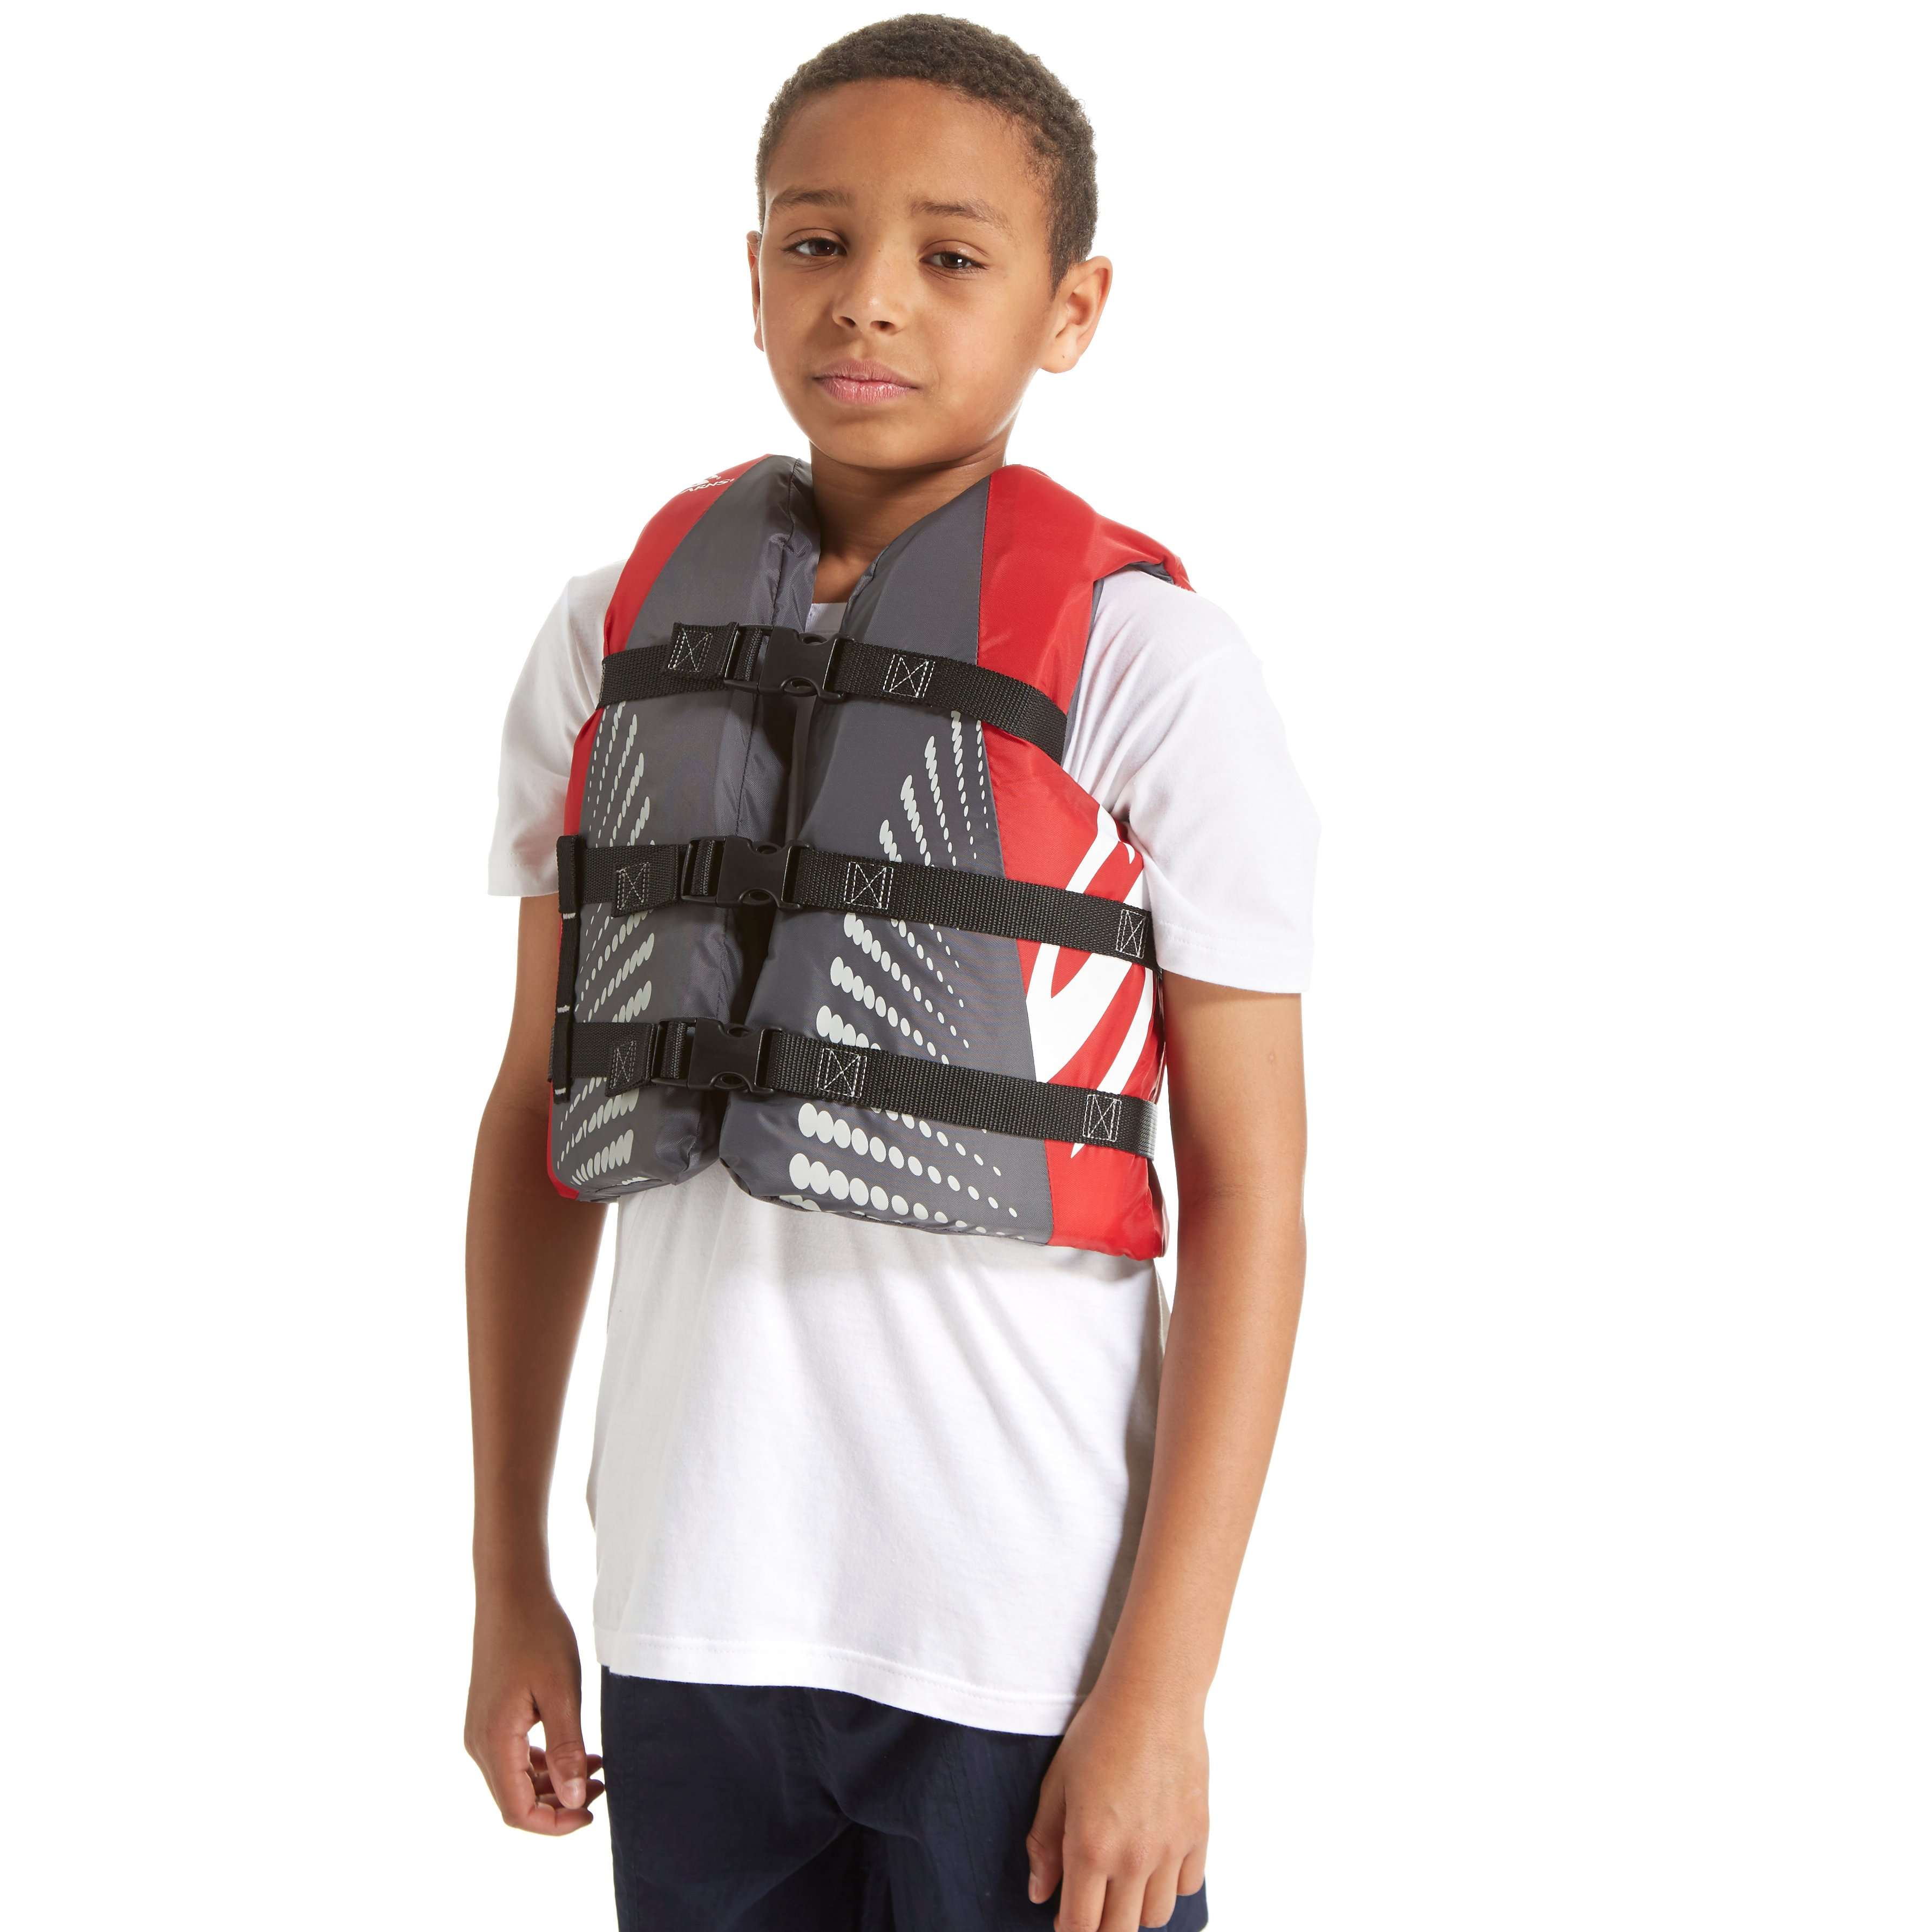 STEARNS Kid's Classic Mass Life Vest